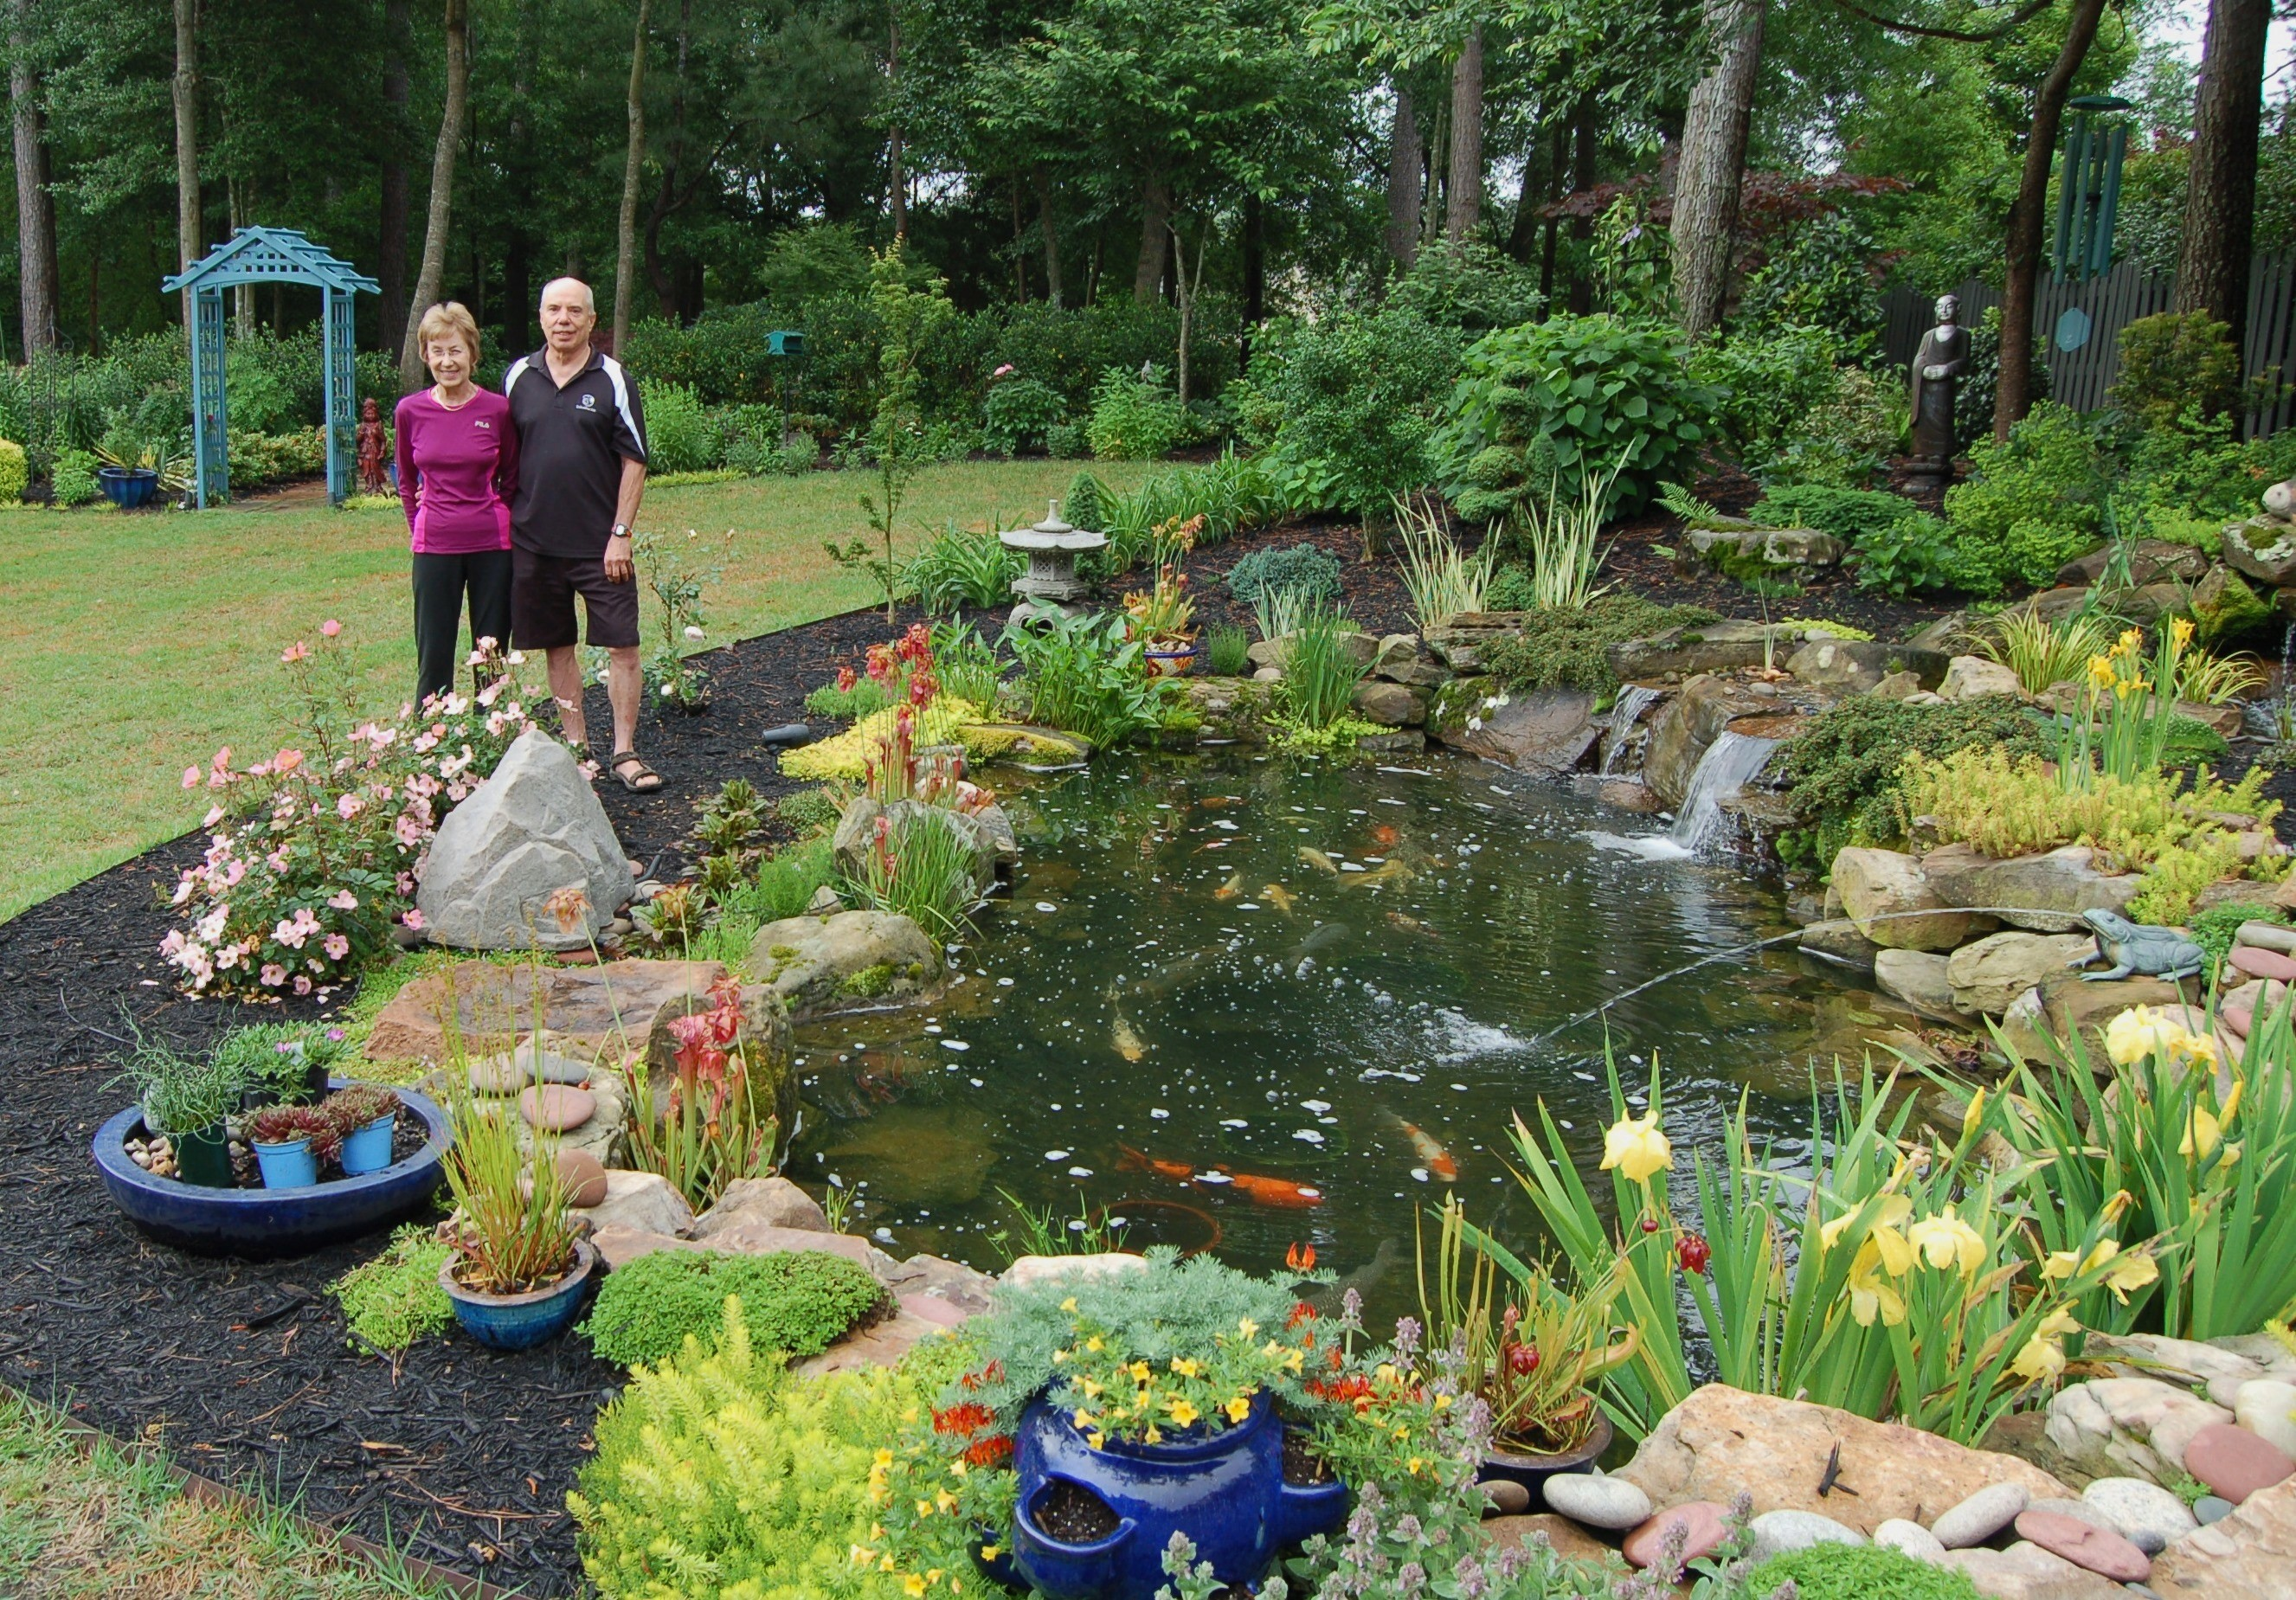 Sc koi water garden society opens 2013 tour hortitopia for Koi ponds and gardens